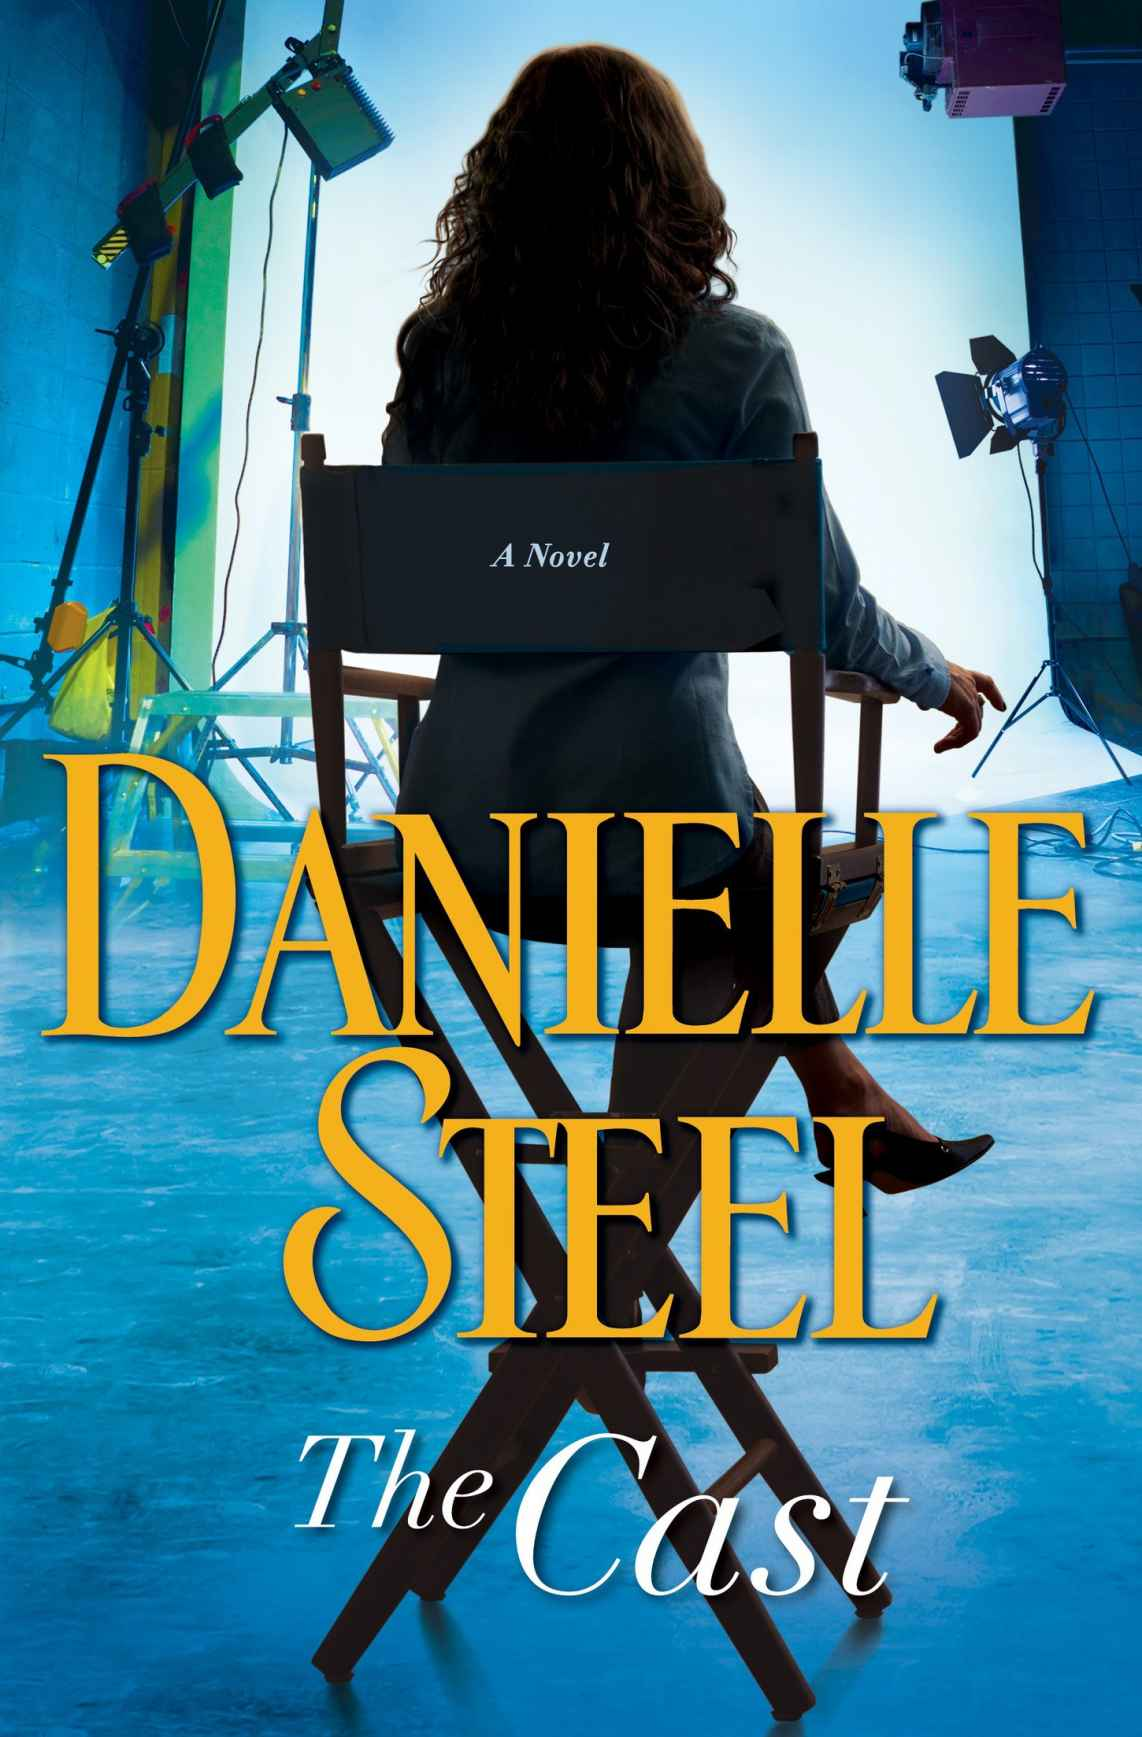 The Cast: A Novel - Danielle Steel [kindle] [mobi]